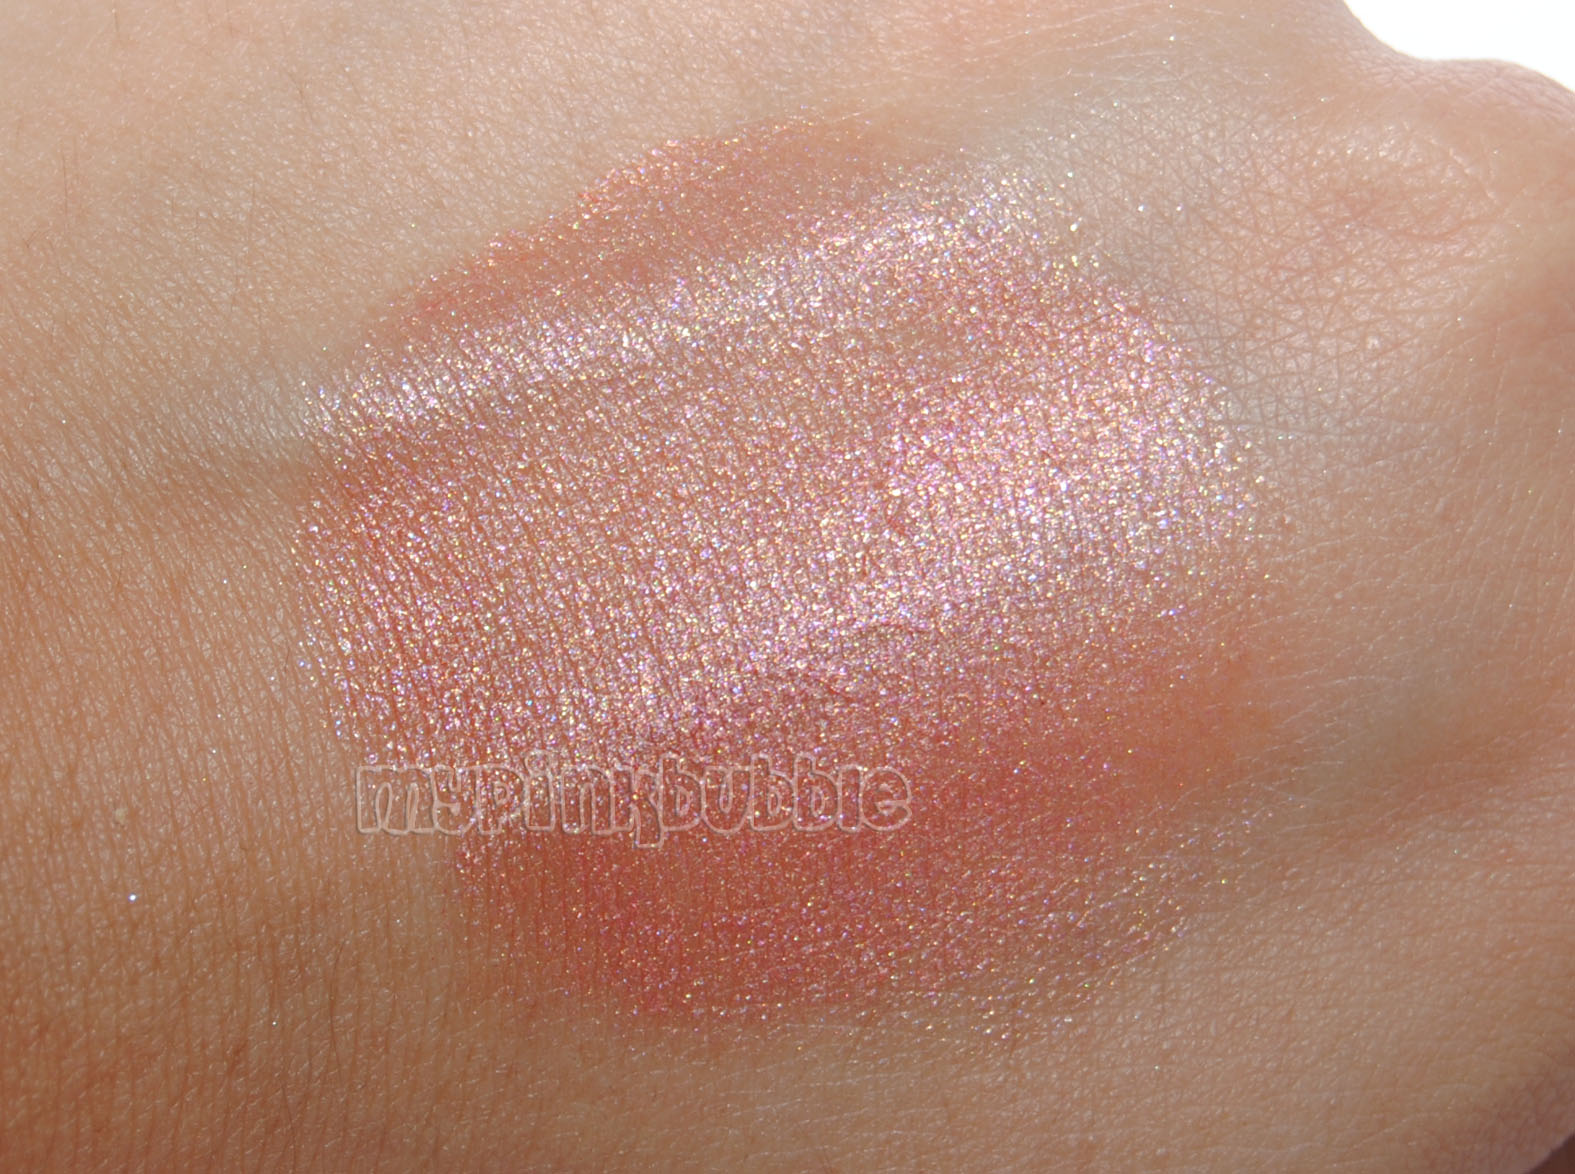 Isadora Twist-up blush 89 Sunset in rio swatch